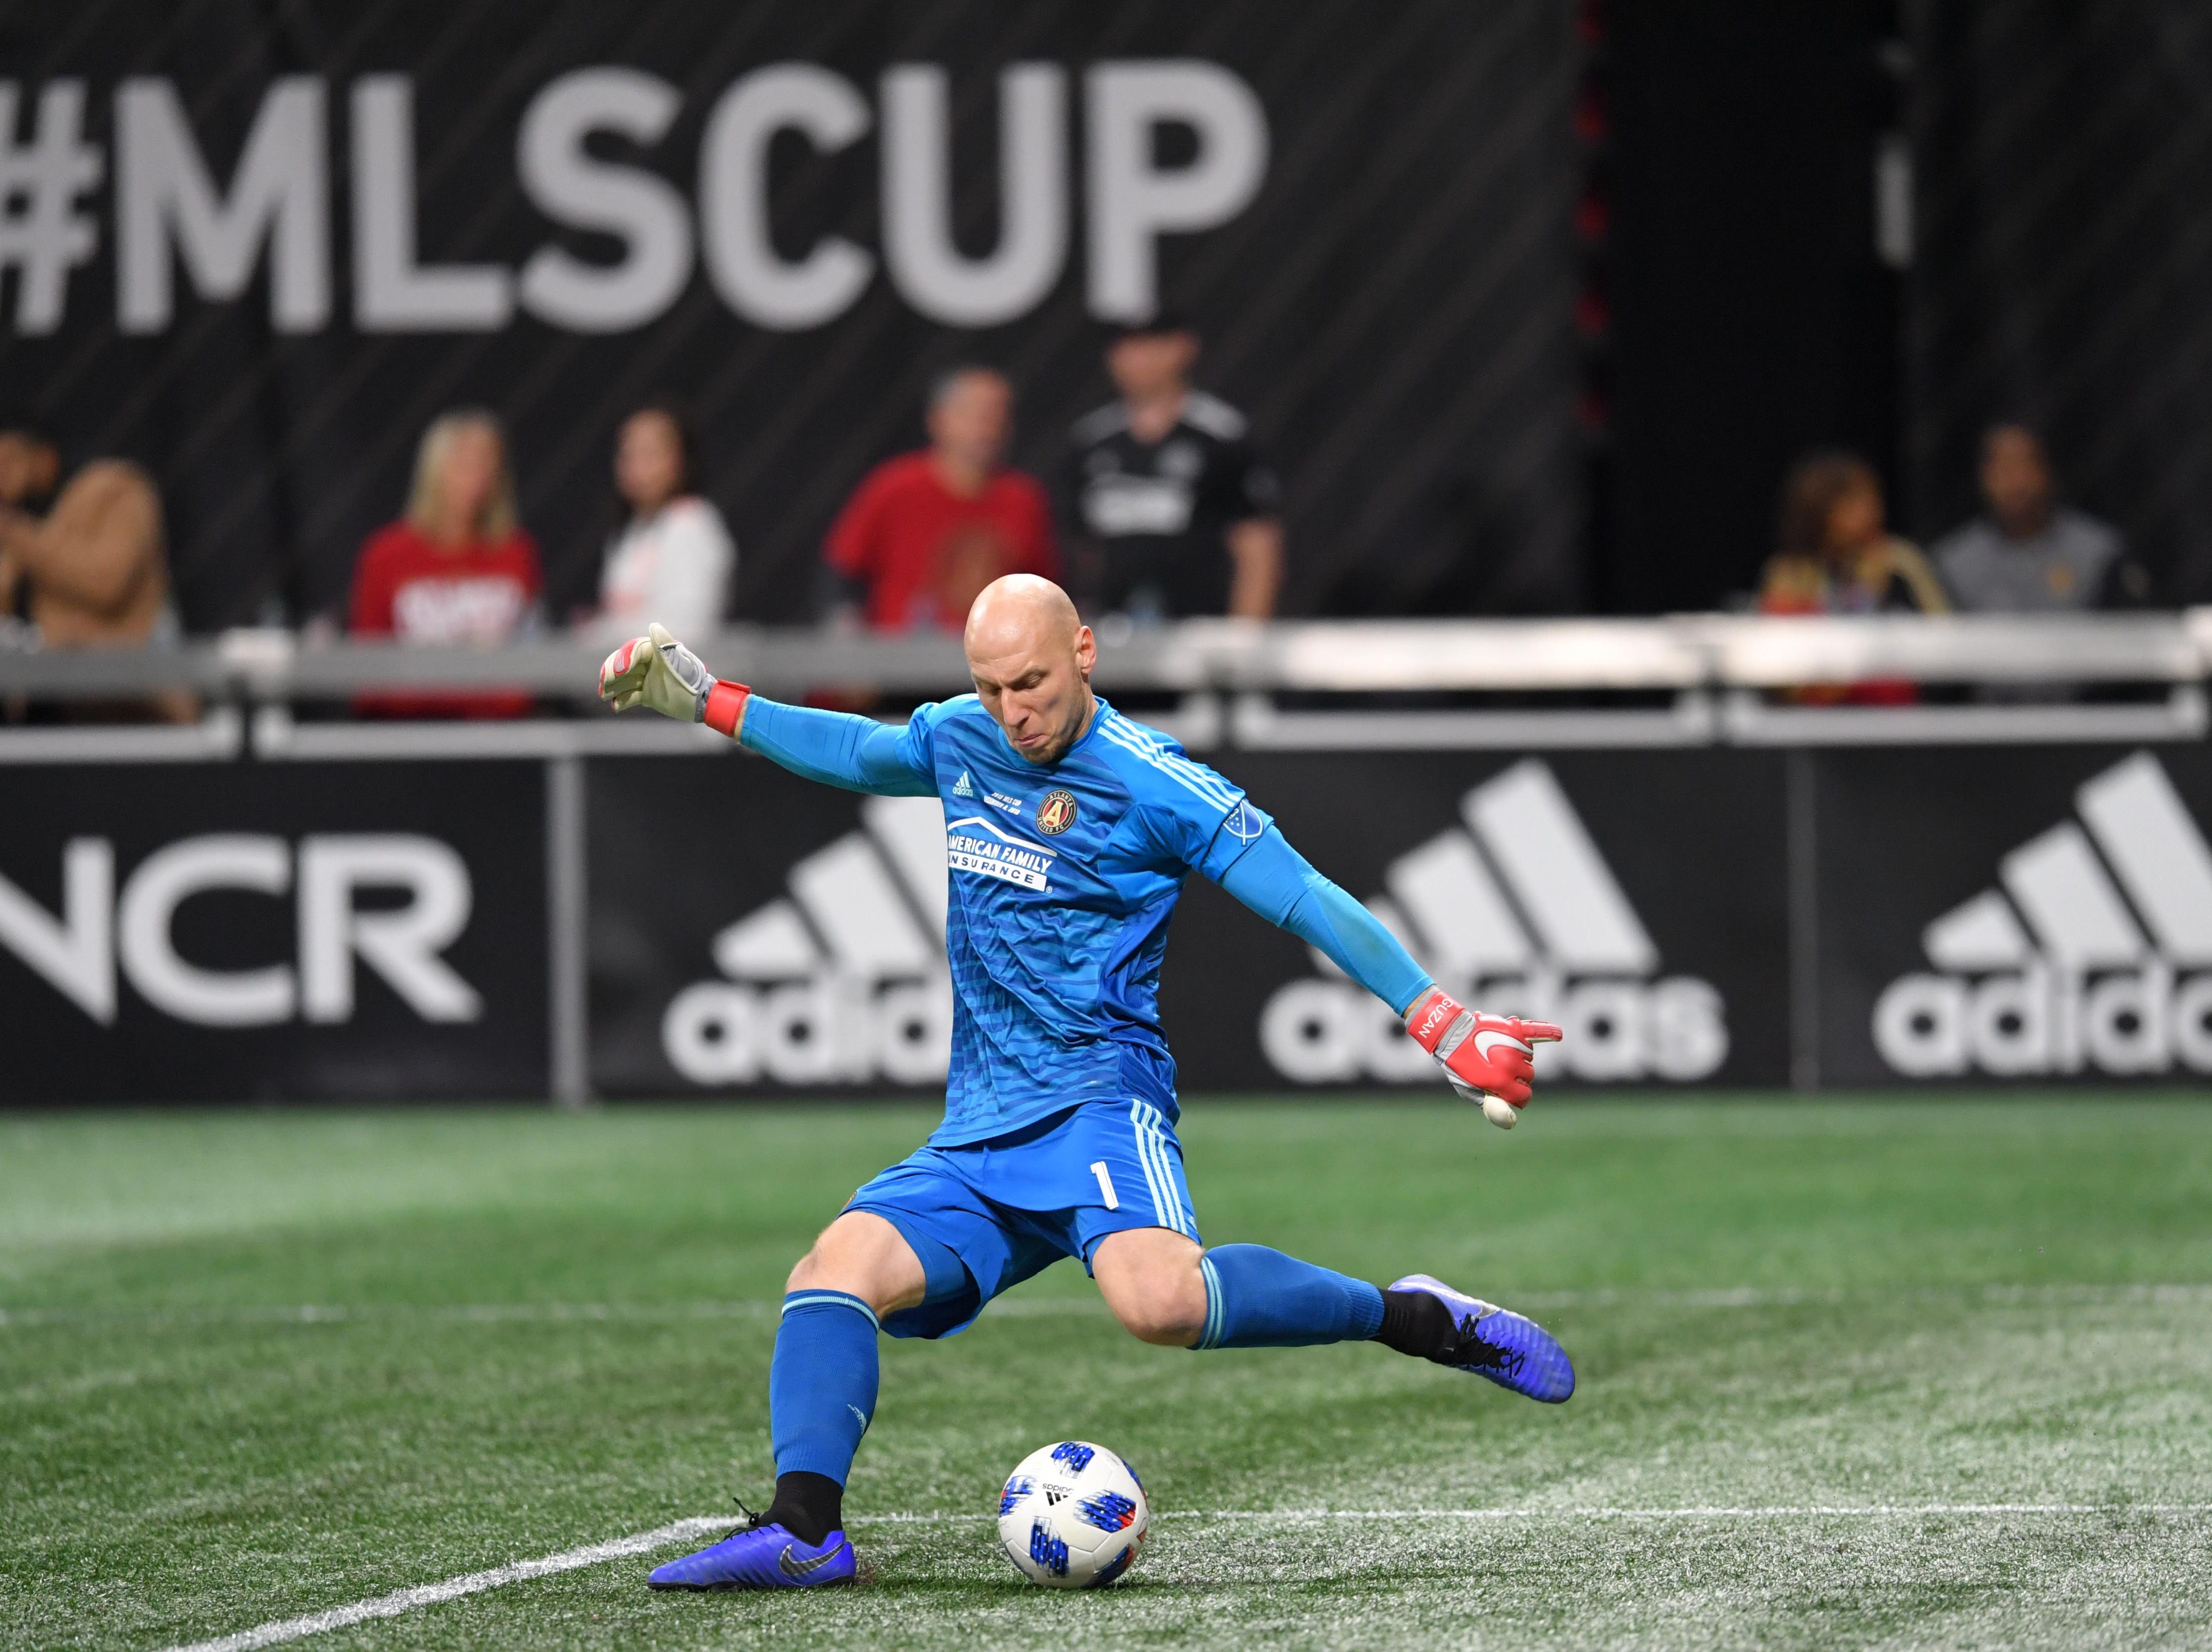 Atlanta United goalkeeper Brad Guzan boots a goal kick against the Portland Timbers in the first half in the 2018 MLS Cup at Mercedes-Benz Stadium.